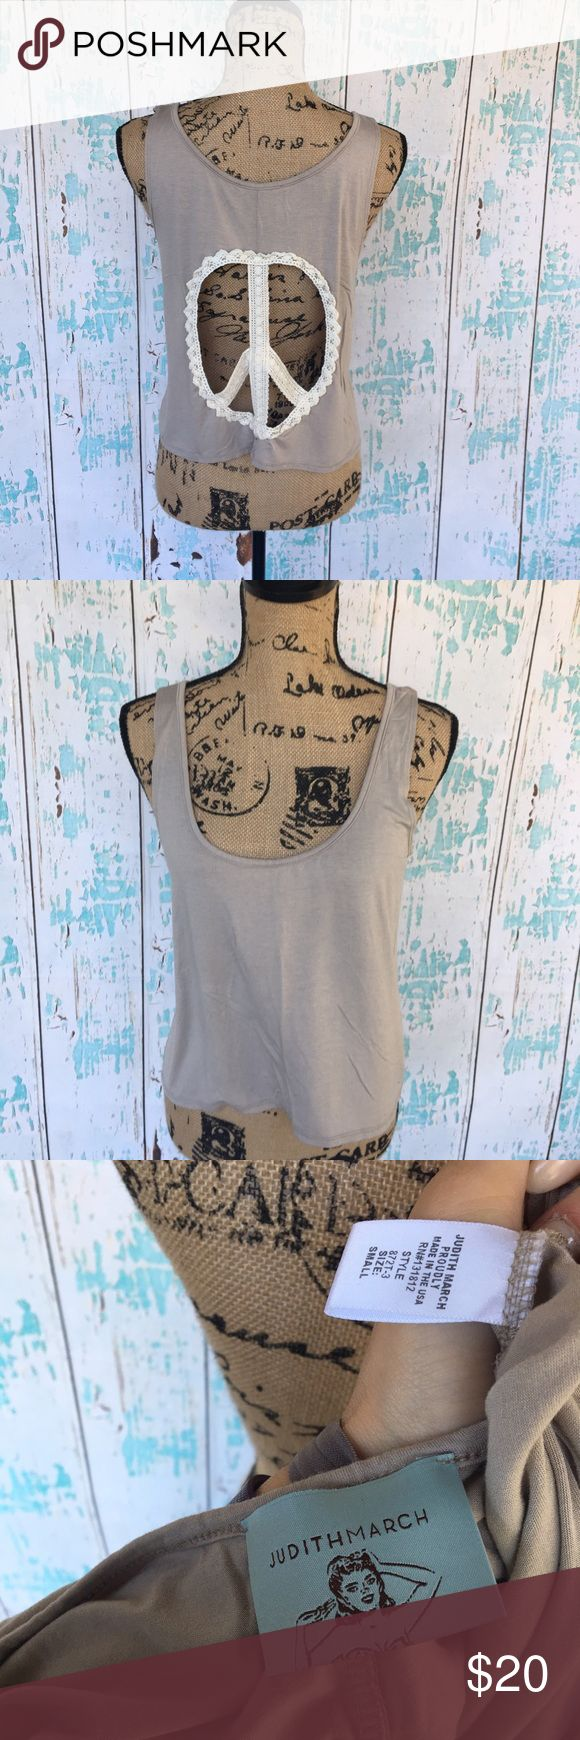 Judith March crop w/ peace sign open back small Judith March crop w/ peace sign open back size small Judith March Tops Crop Tops